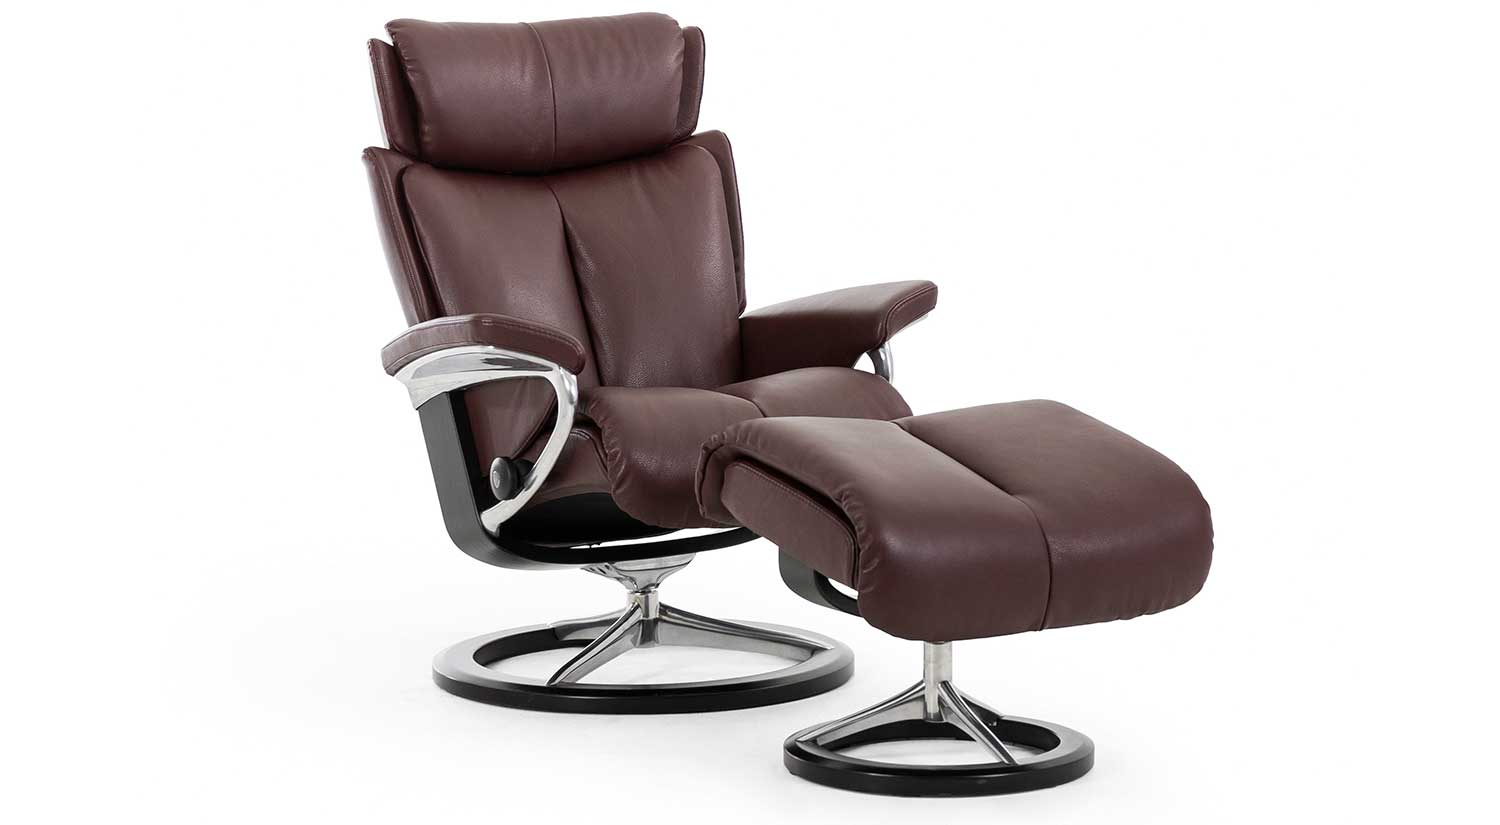 Magic Stressless Chair And Otto Signature Magic Stressless Chair And Otto  Signature